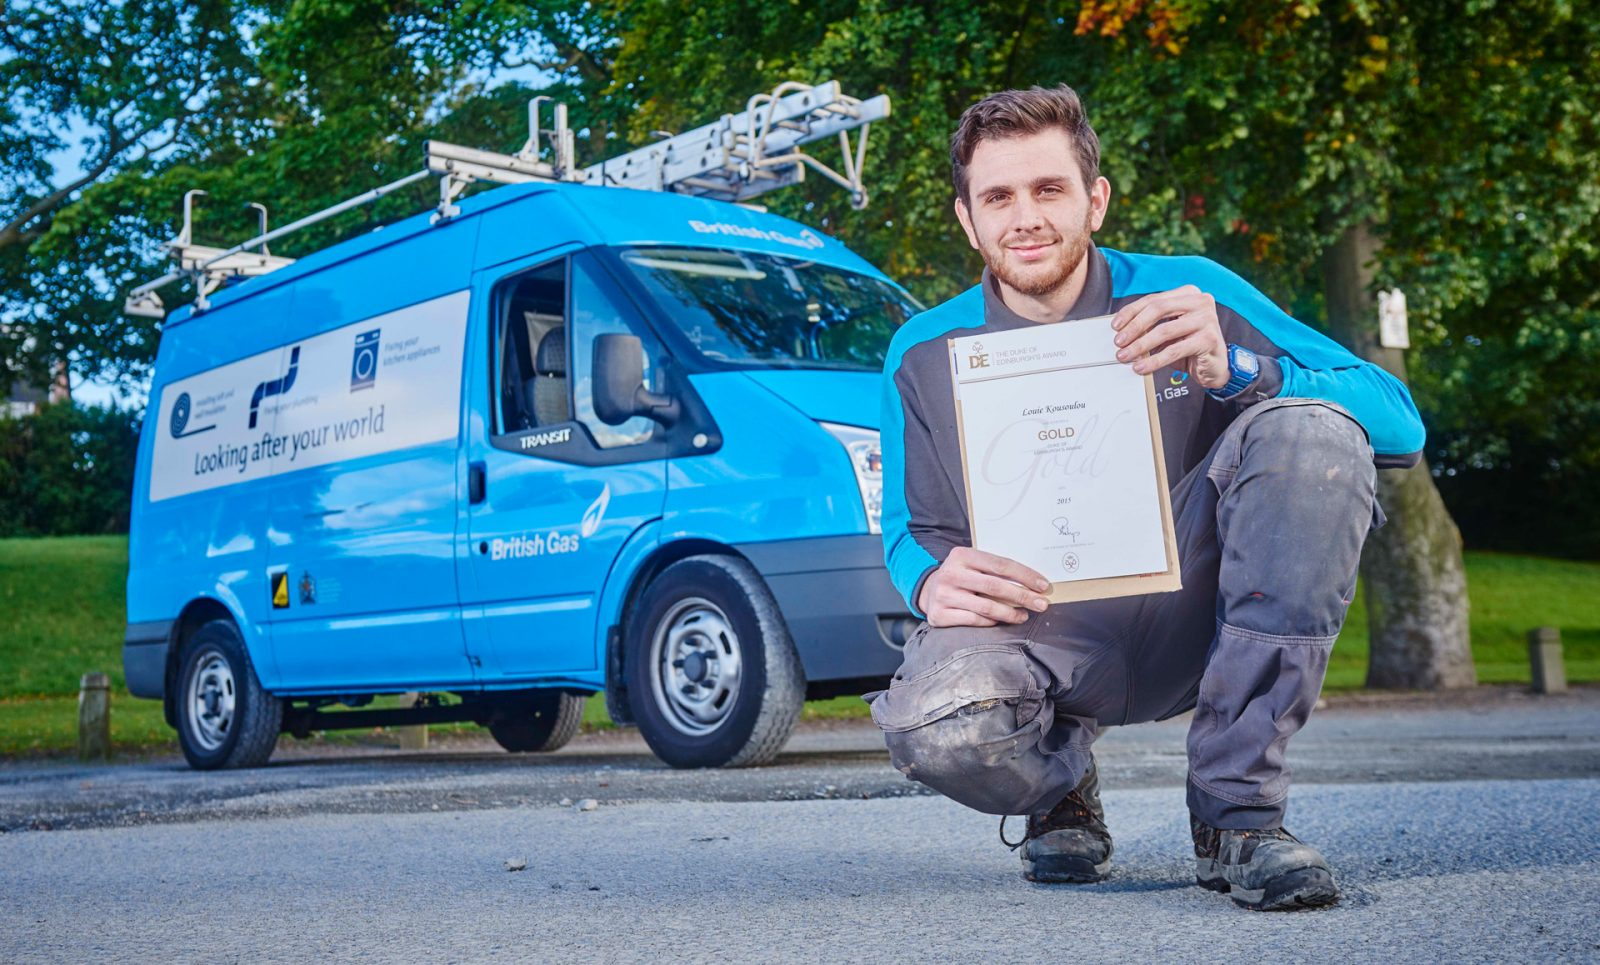 British Gas male apprentice kneeling with Gold DofE certificate